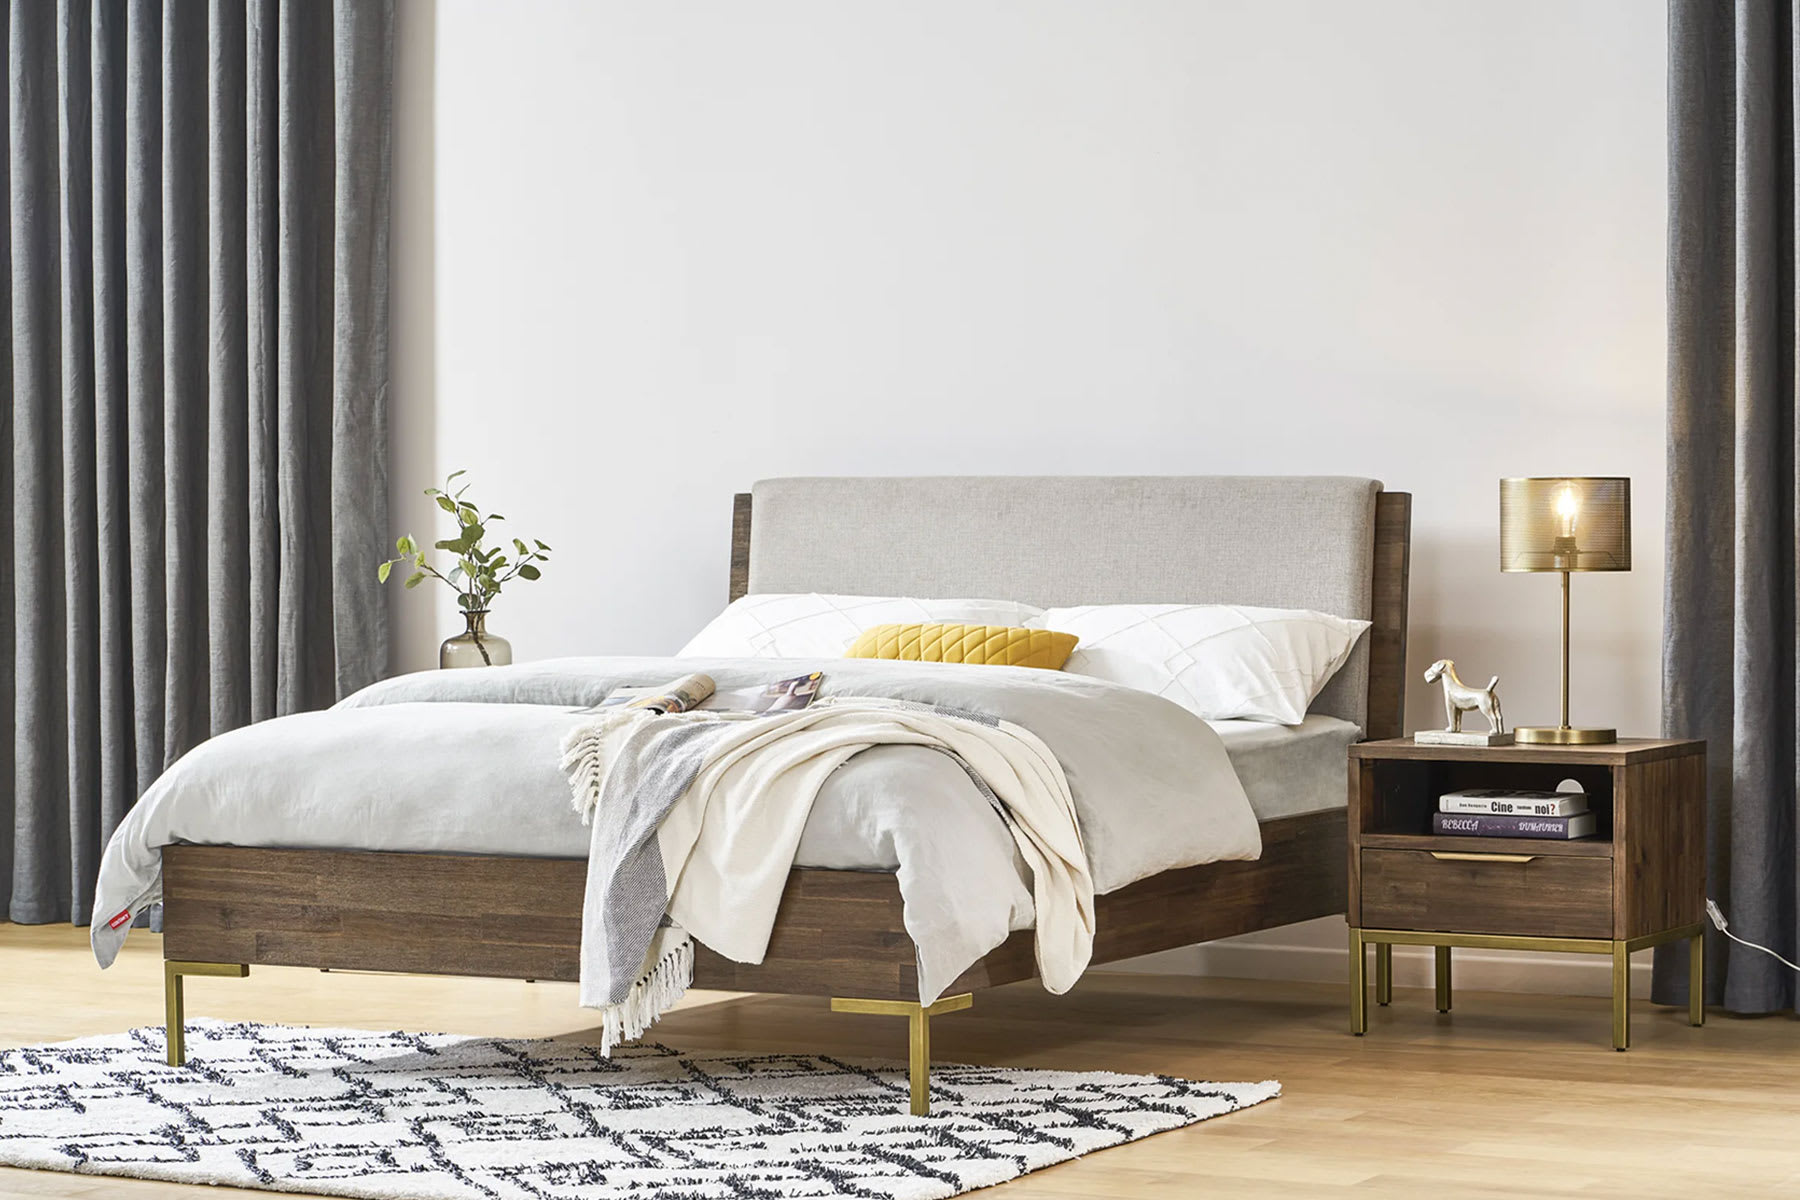 modern bedroom with bed and side tables